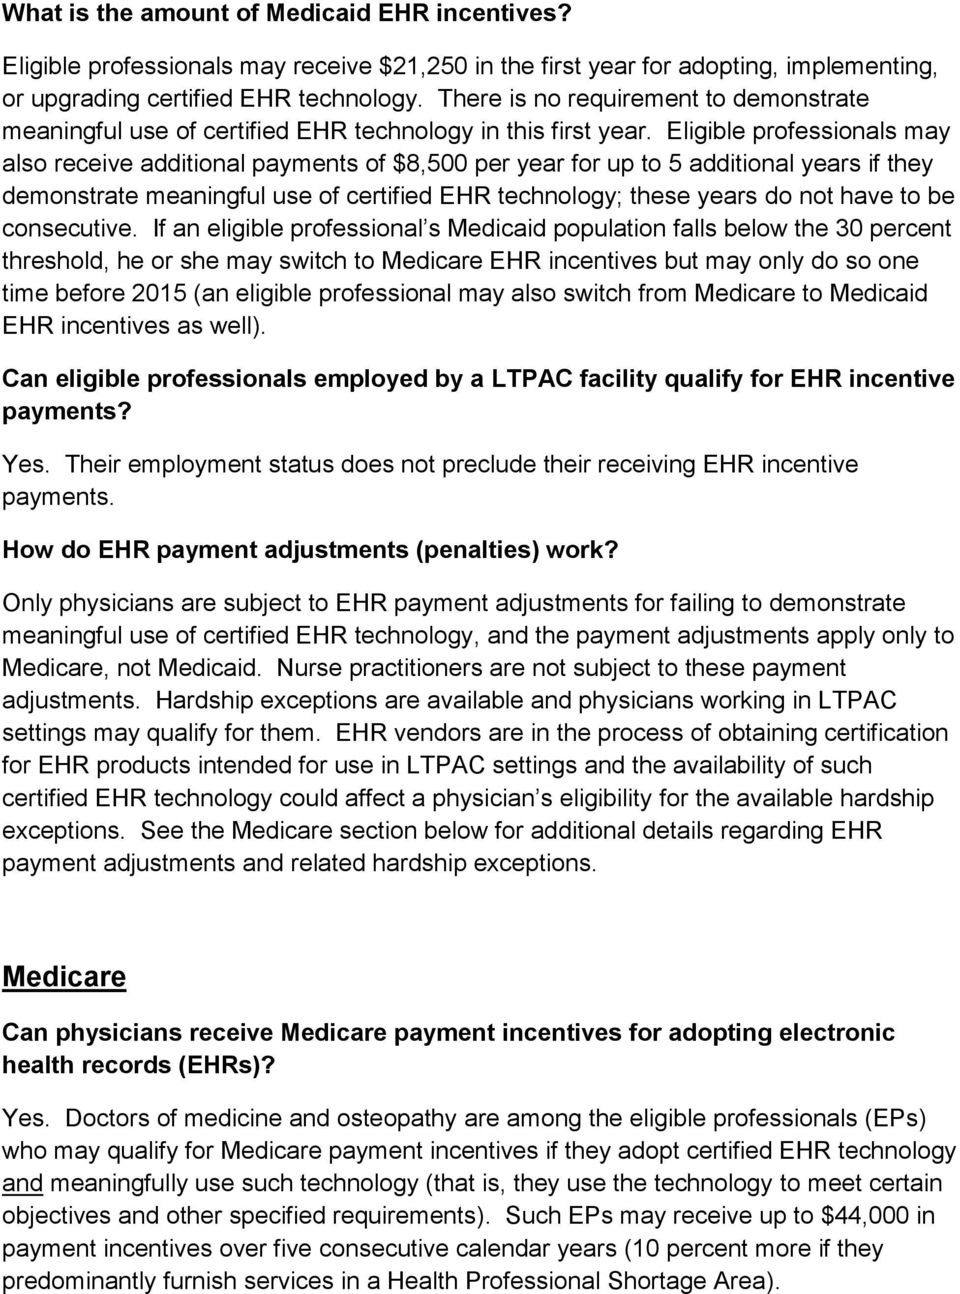 Eligible professionals may also receive additional payments of $8,500 per year for up to 5 additional years if they demonstrate meaningful use of certified EHR technology; these years do not have to